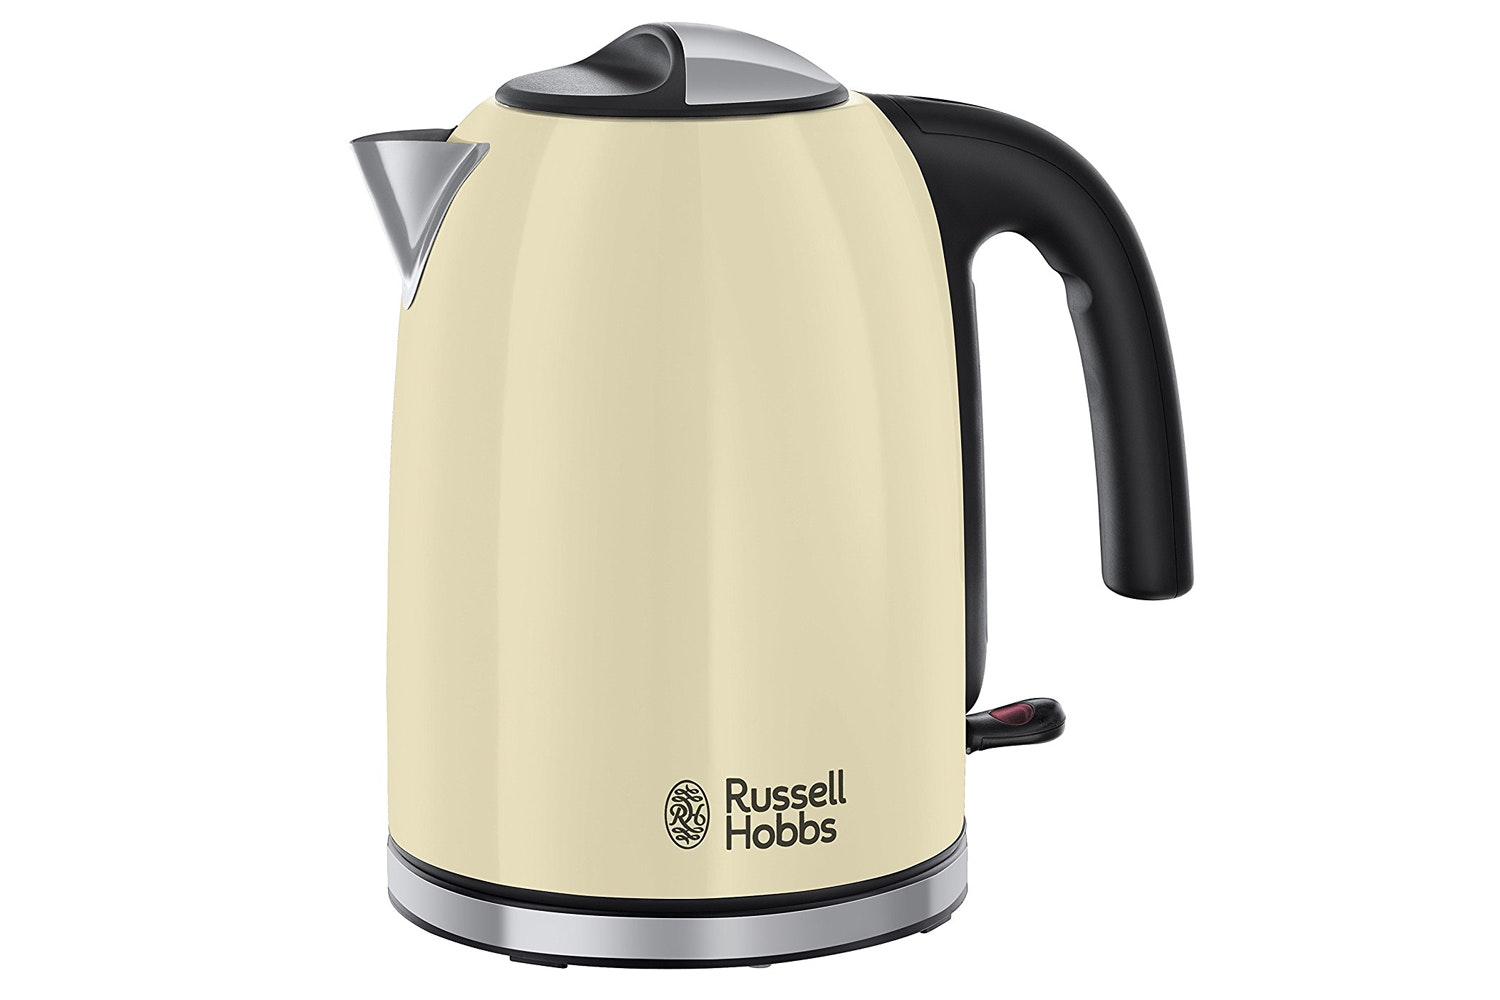 Russell Hobbs Kettle Cream | 20415